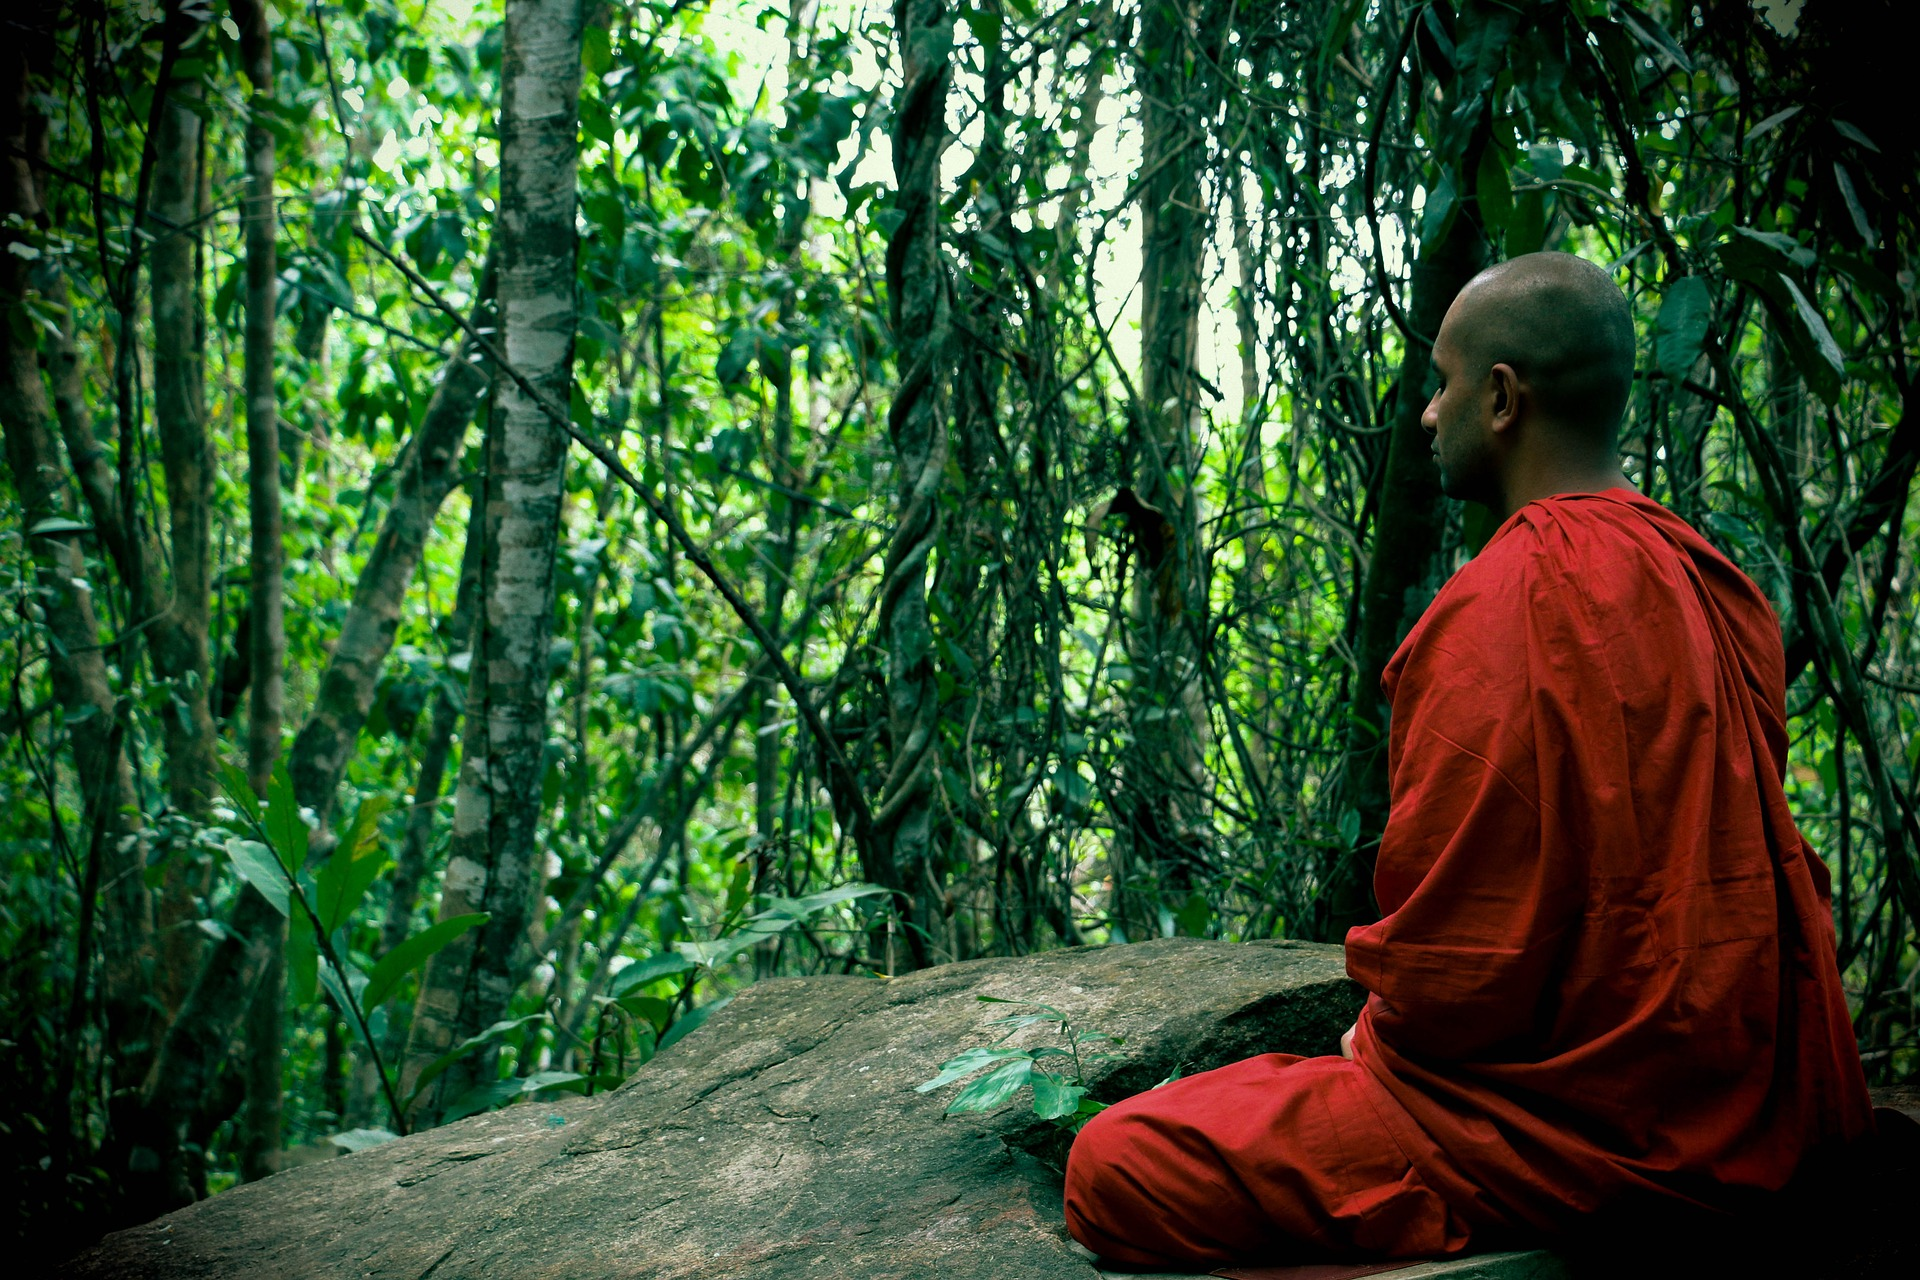 Monk Meditating in the Forest